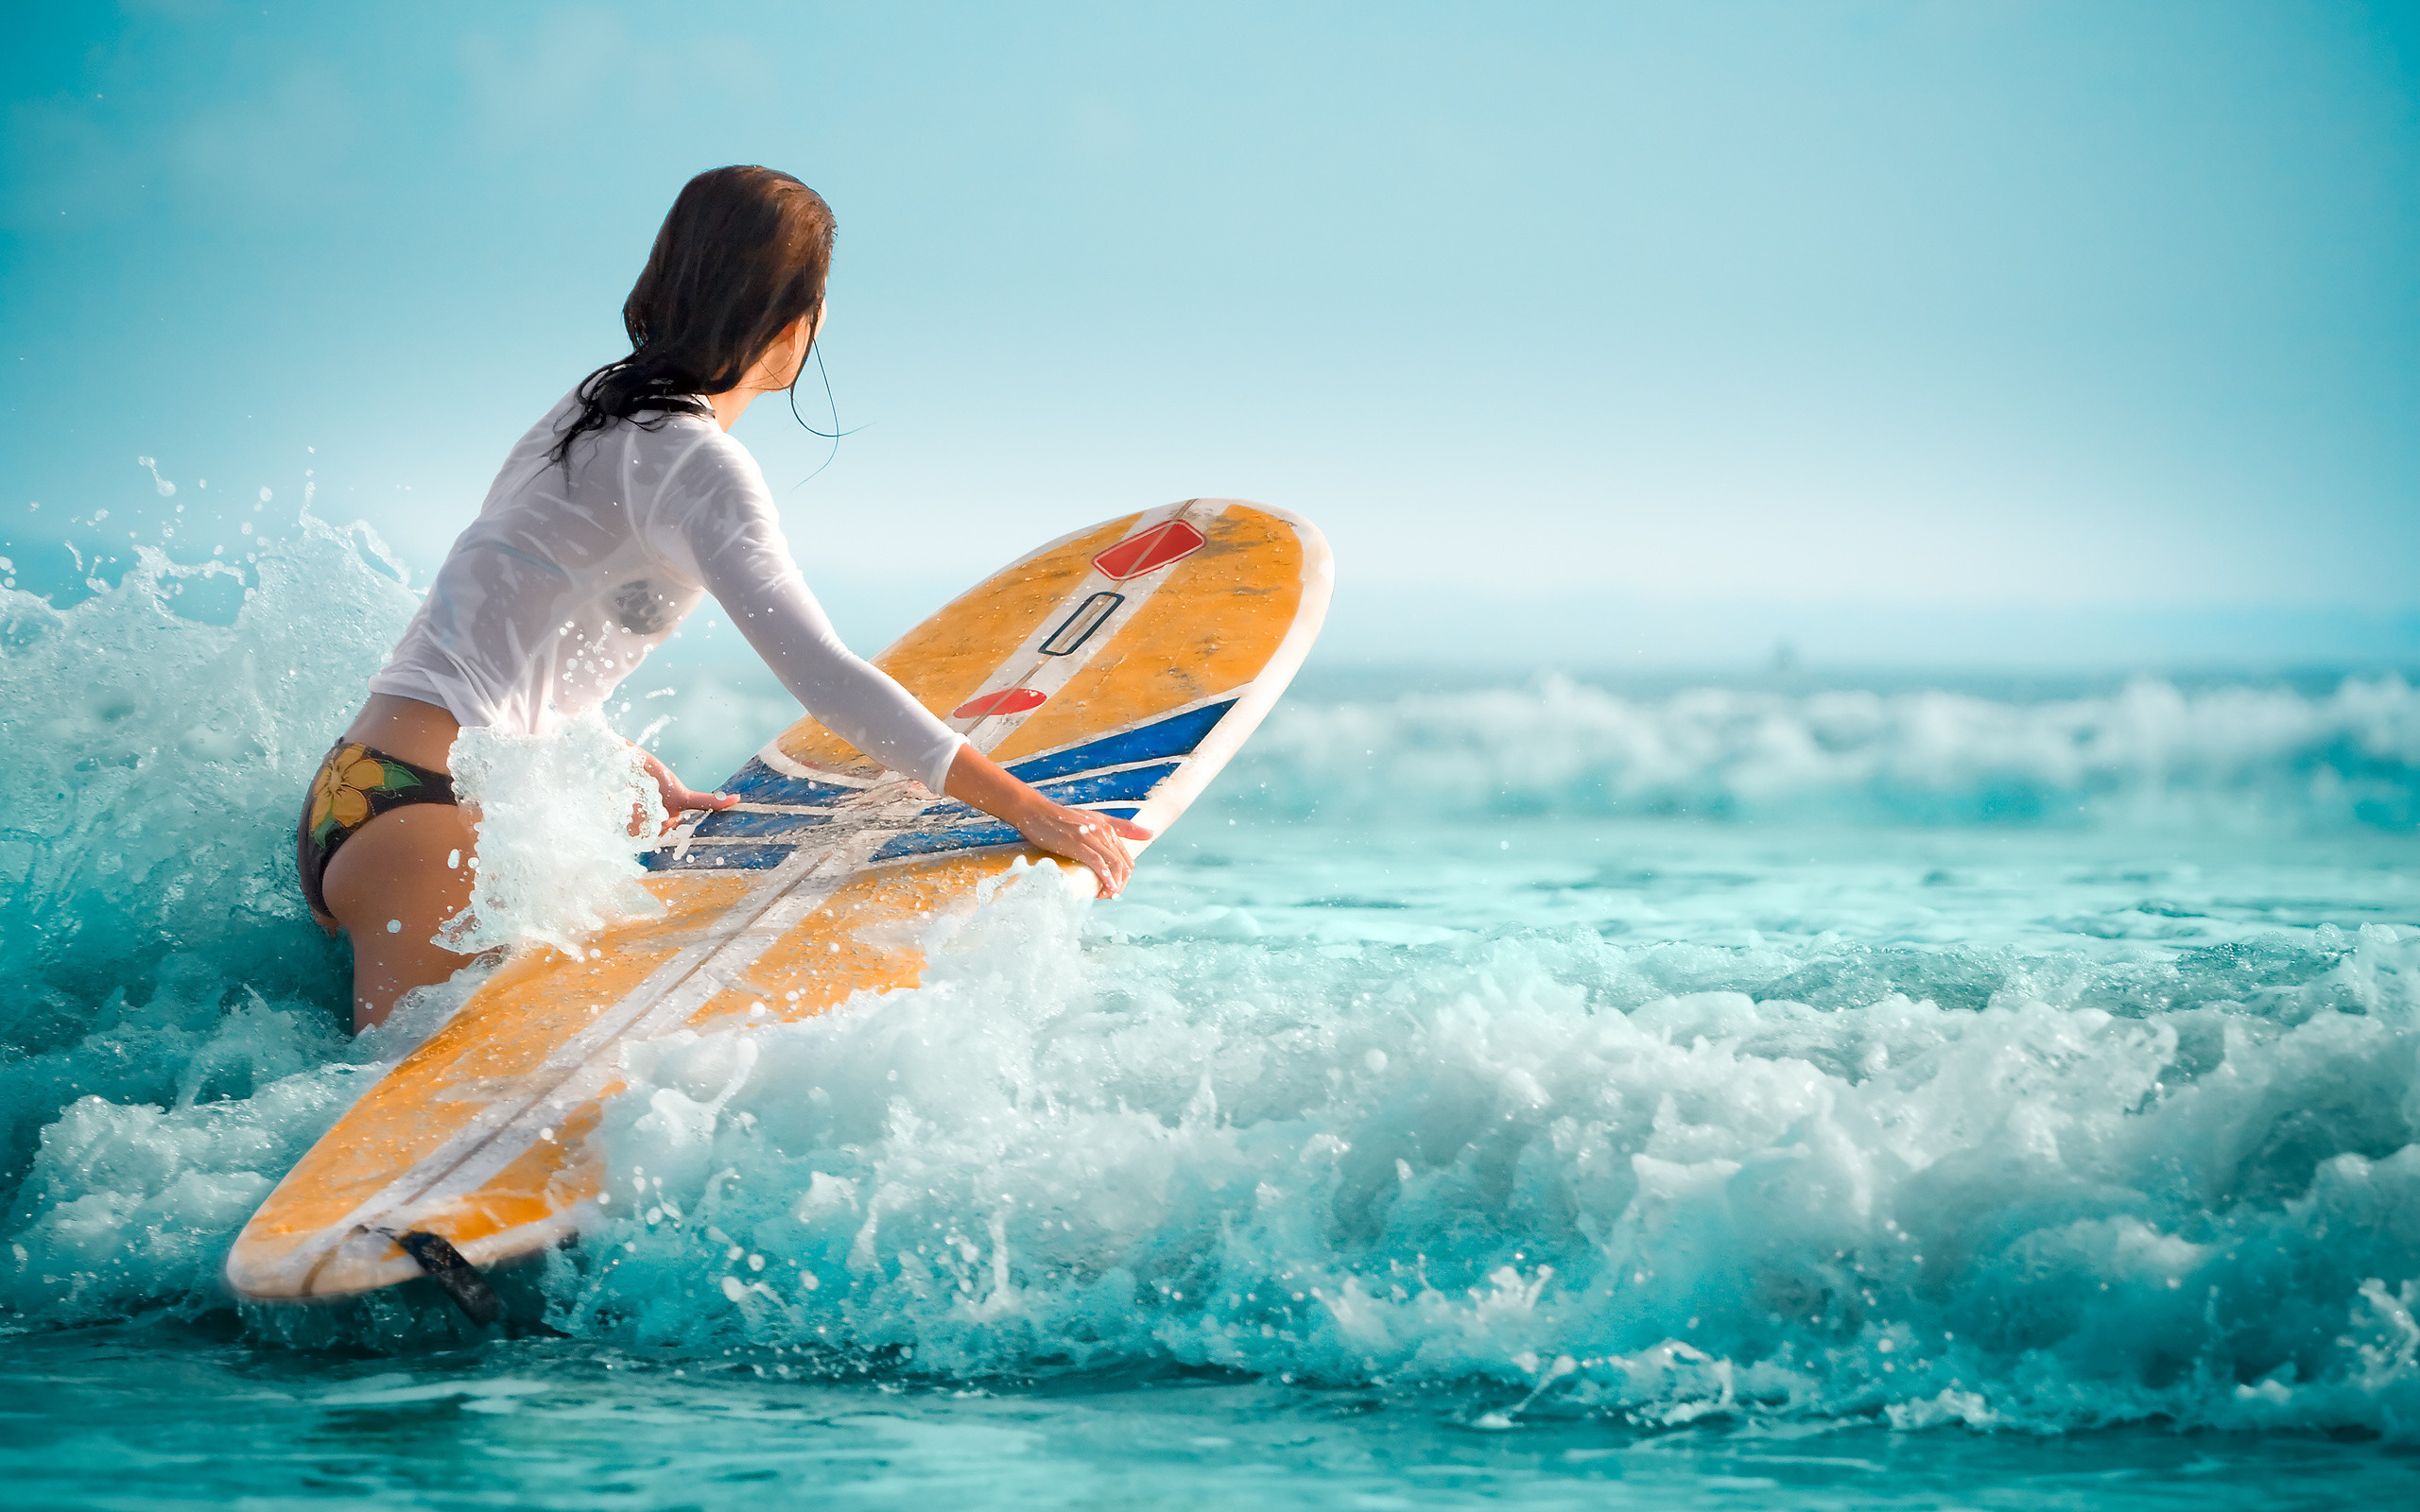 Res: 2560x1600, Surfing Girl HD Wallpaper